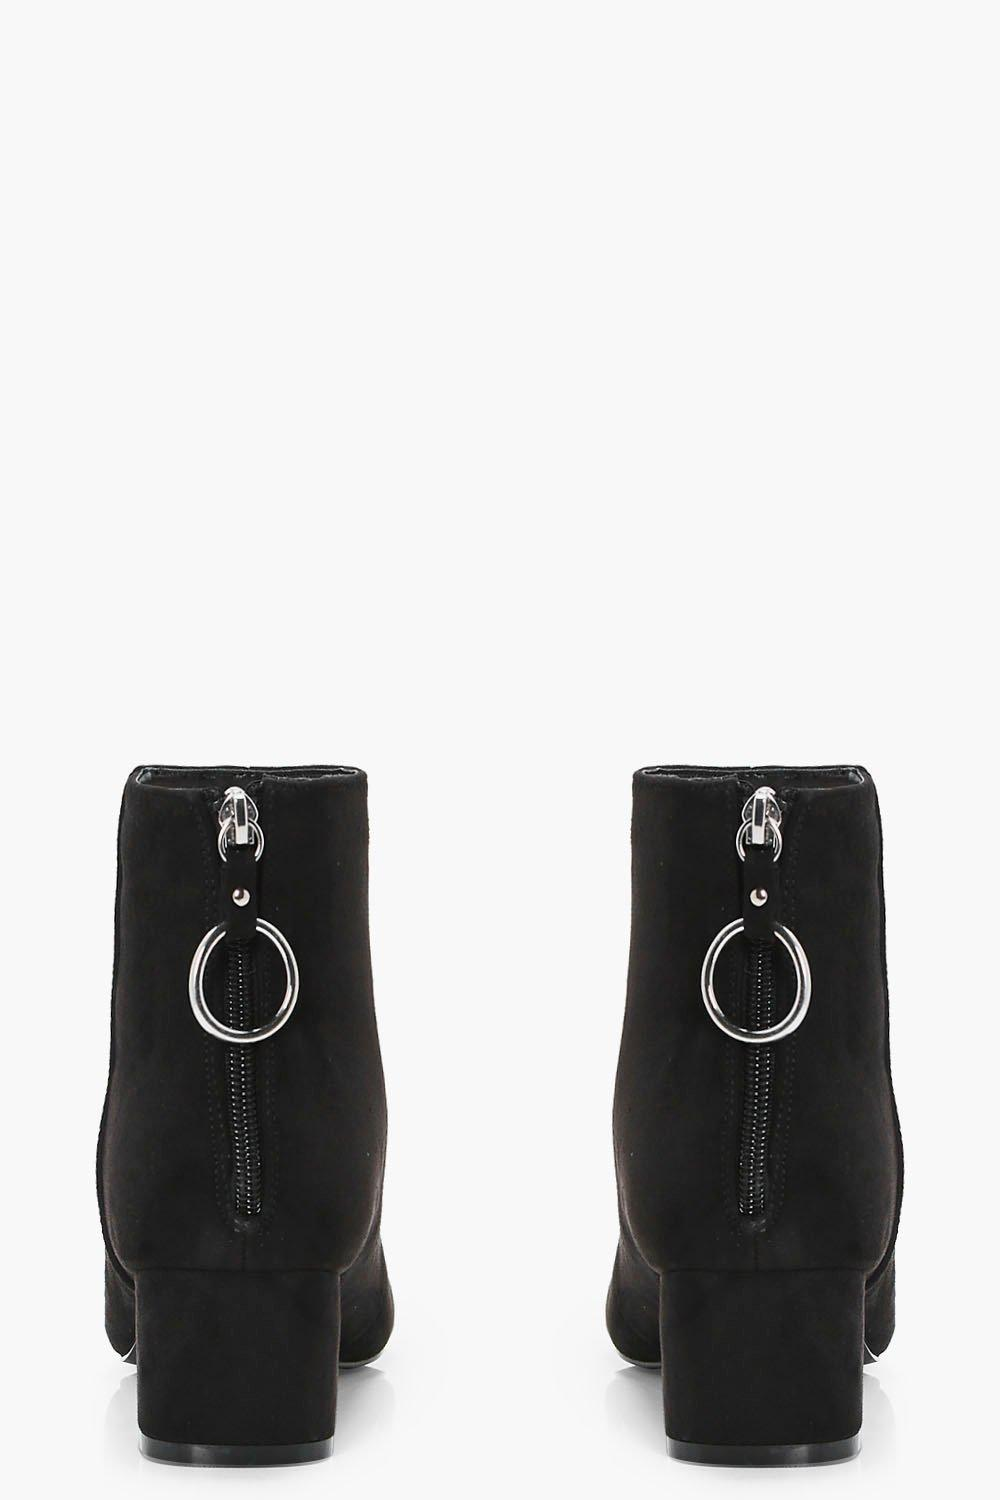 Boohoo Lizzy O Ring Pull Ankle Boot in Black